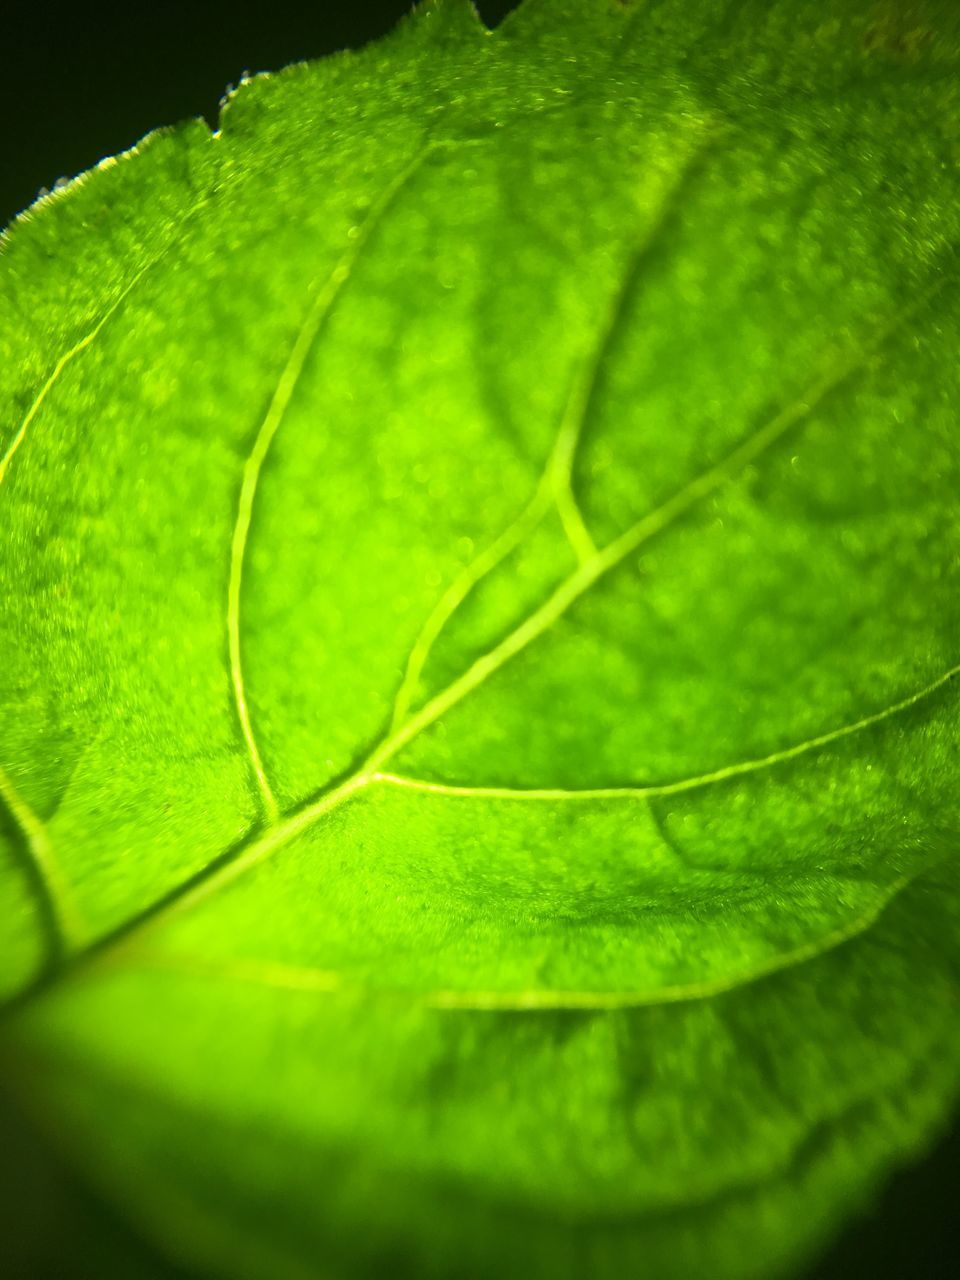 leaf, green color, close-up, freshness, nature, growth, backgrounds, no people, plant, full frame, beauty in nature, day, outdoors, fragility